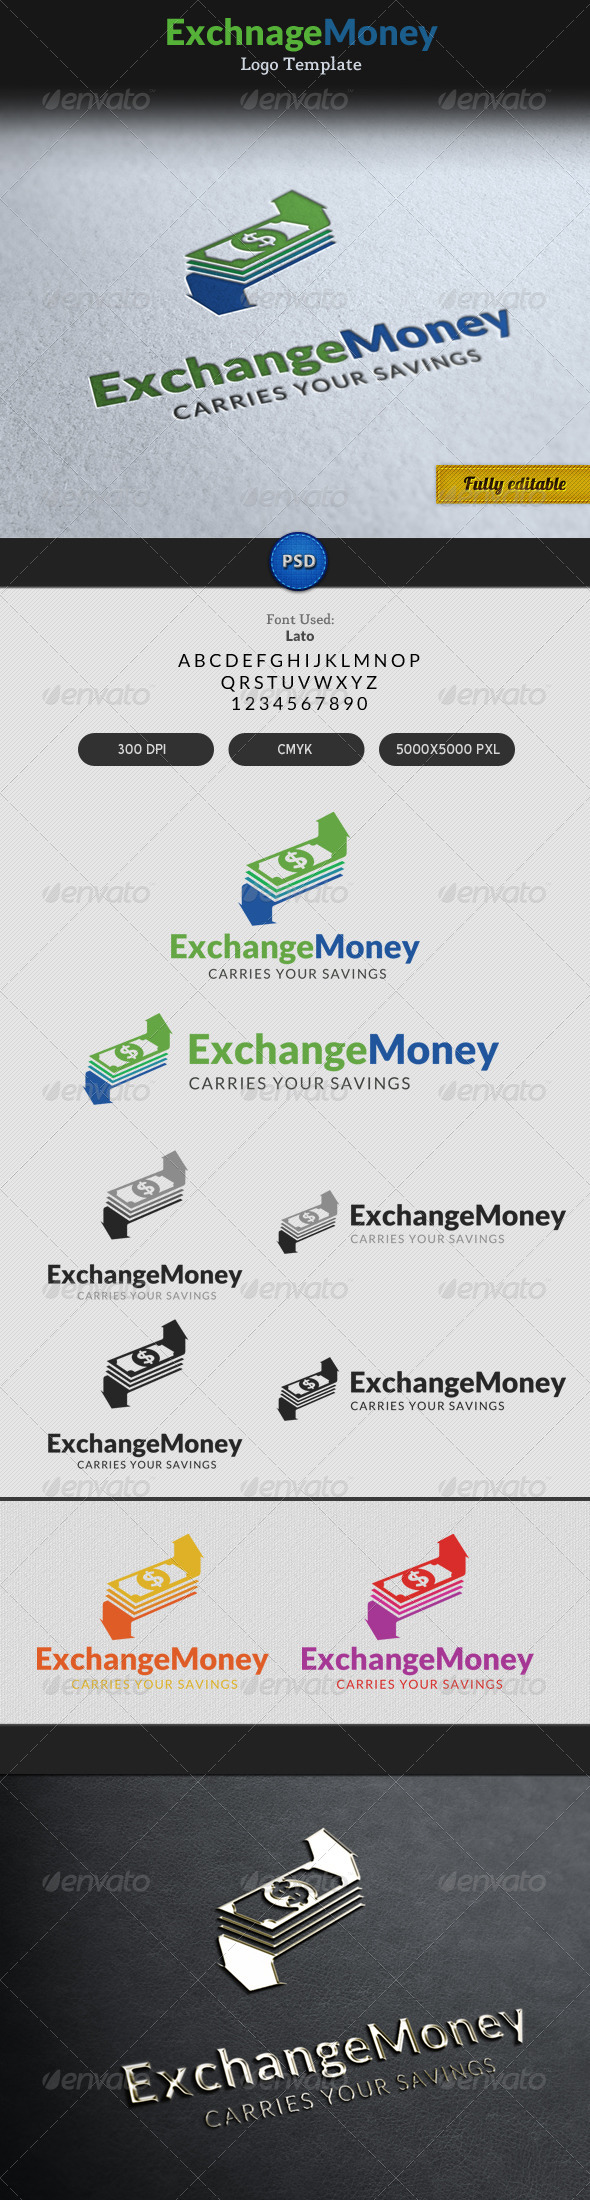 Exchange Money Currency Transaction Logo - Objects Logo Templates